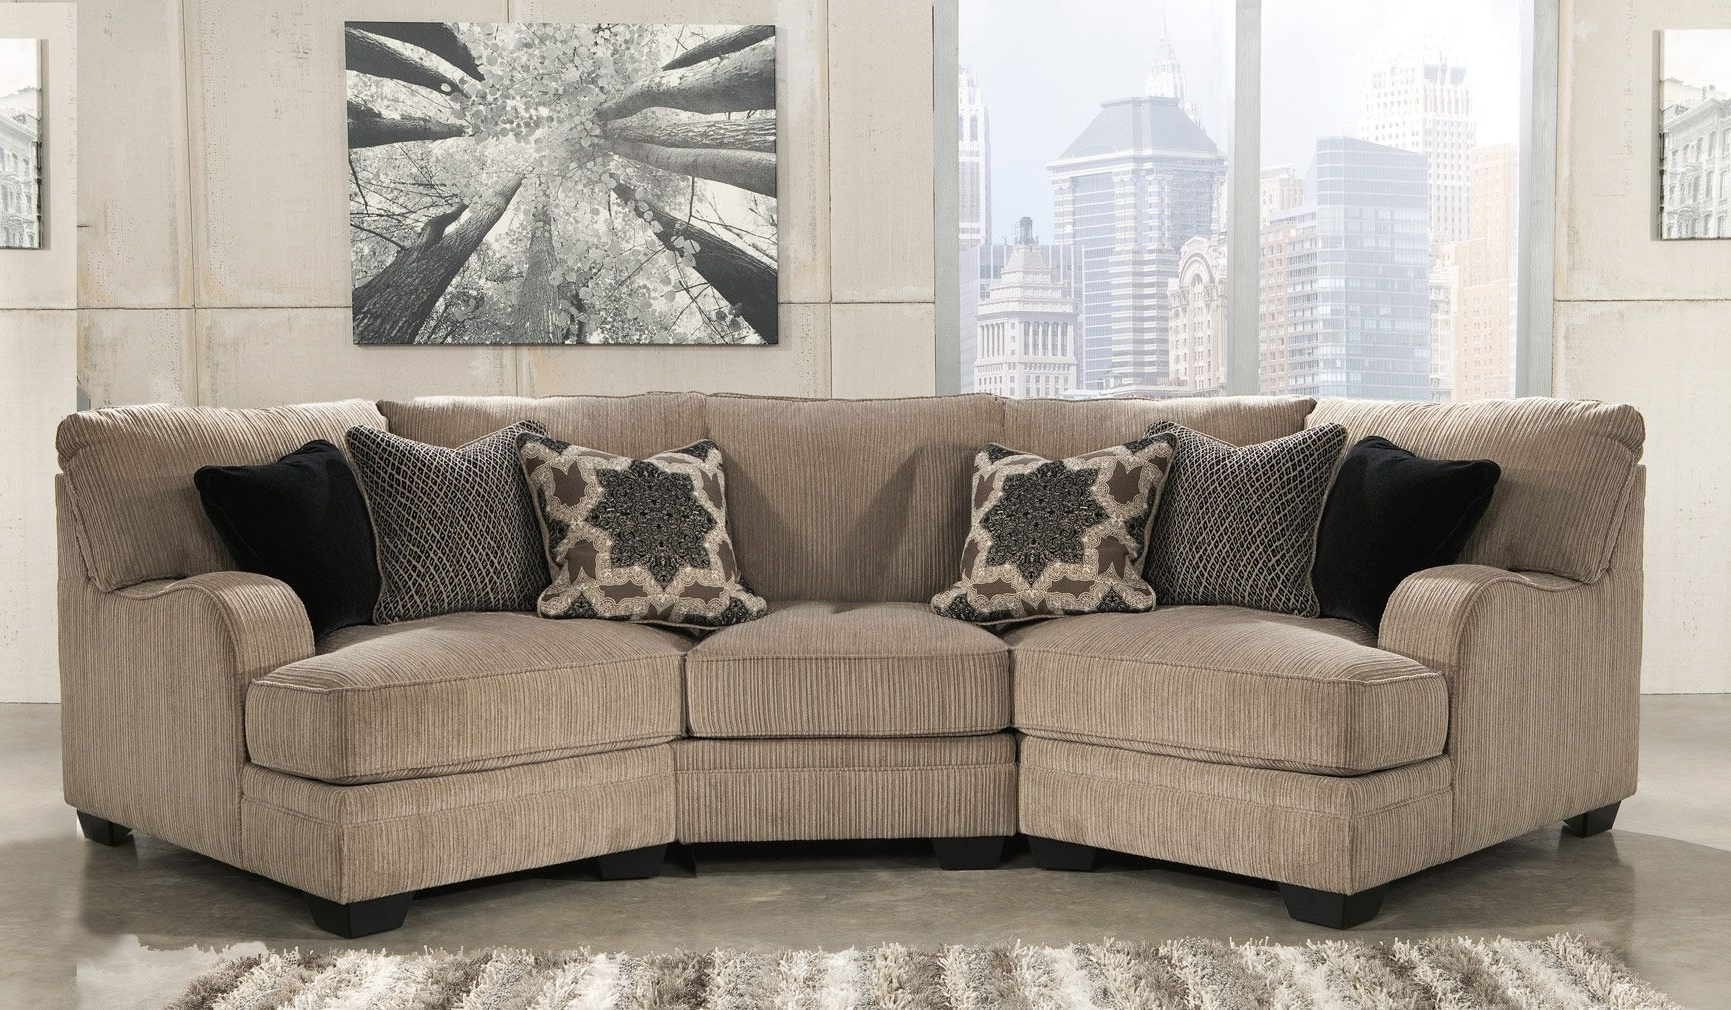 Newest Eau Claire Wi Sectional Sofas With Regard To Signature Designashley  (View 13 of 20)